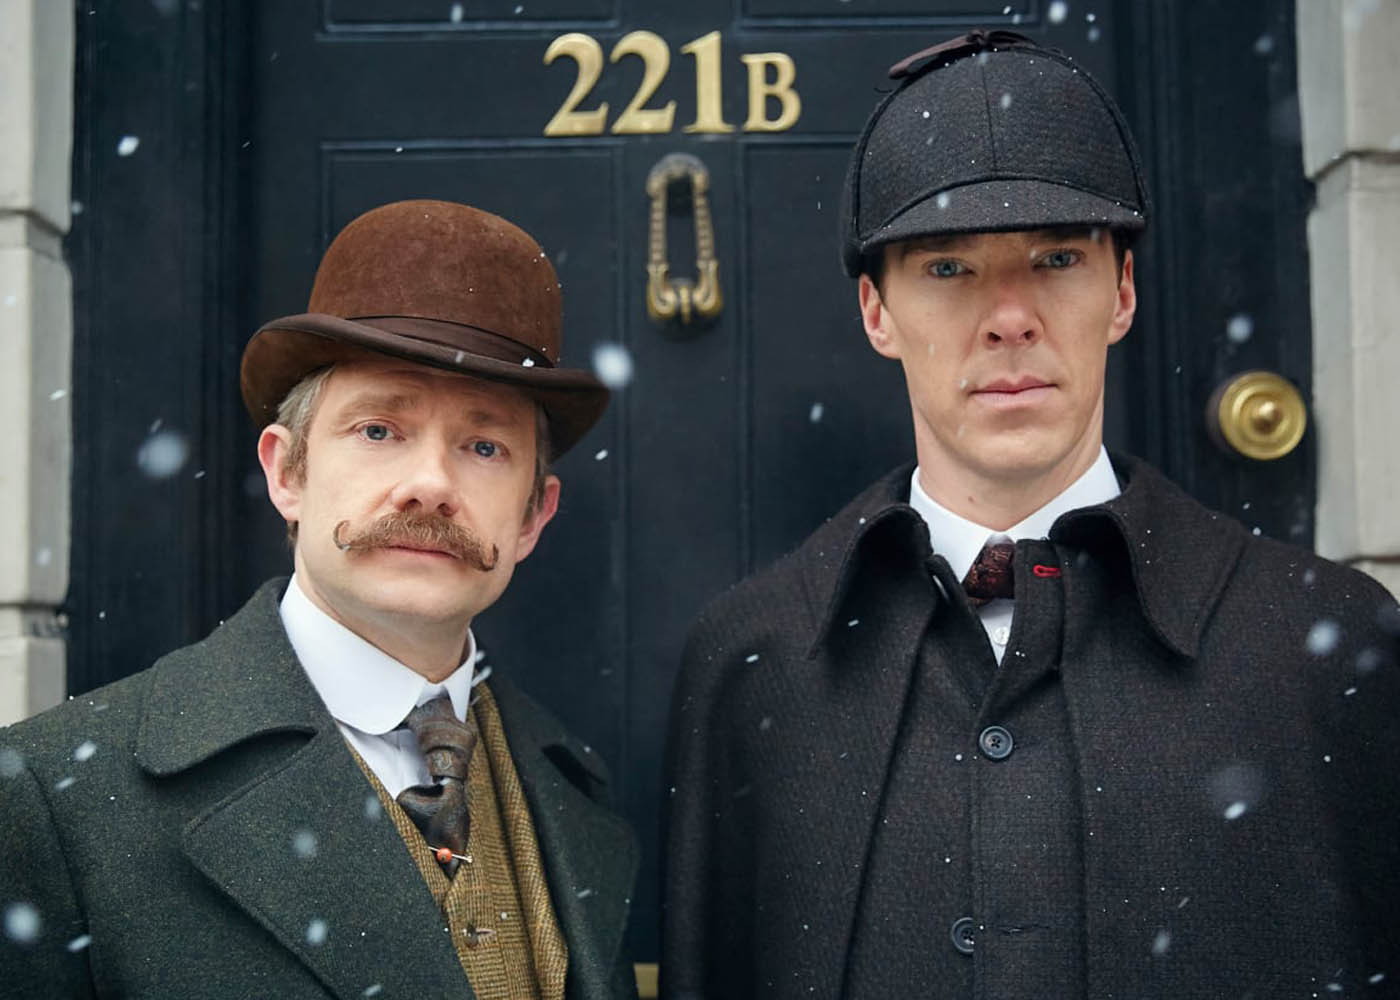 New Dracula Miniseries Coming to BBC from Sherlock Team